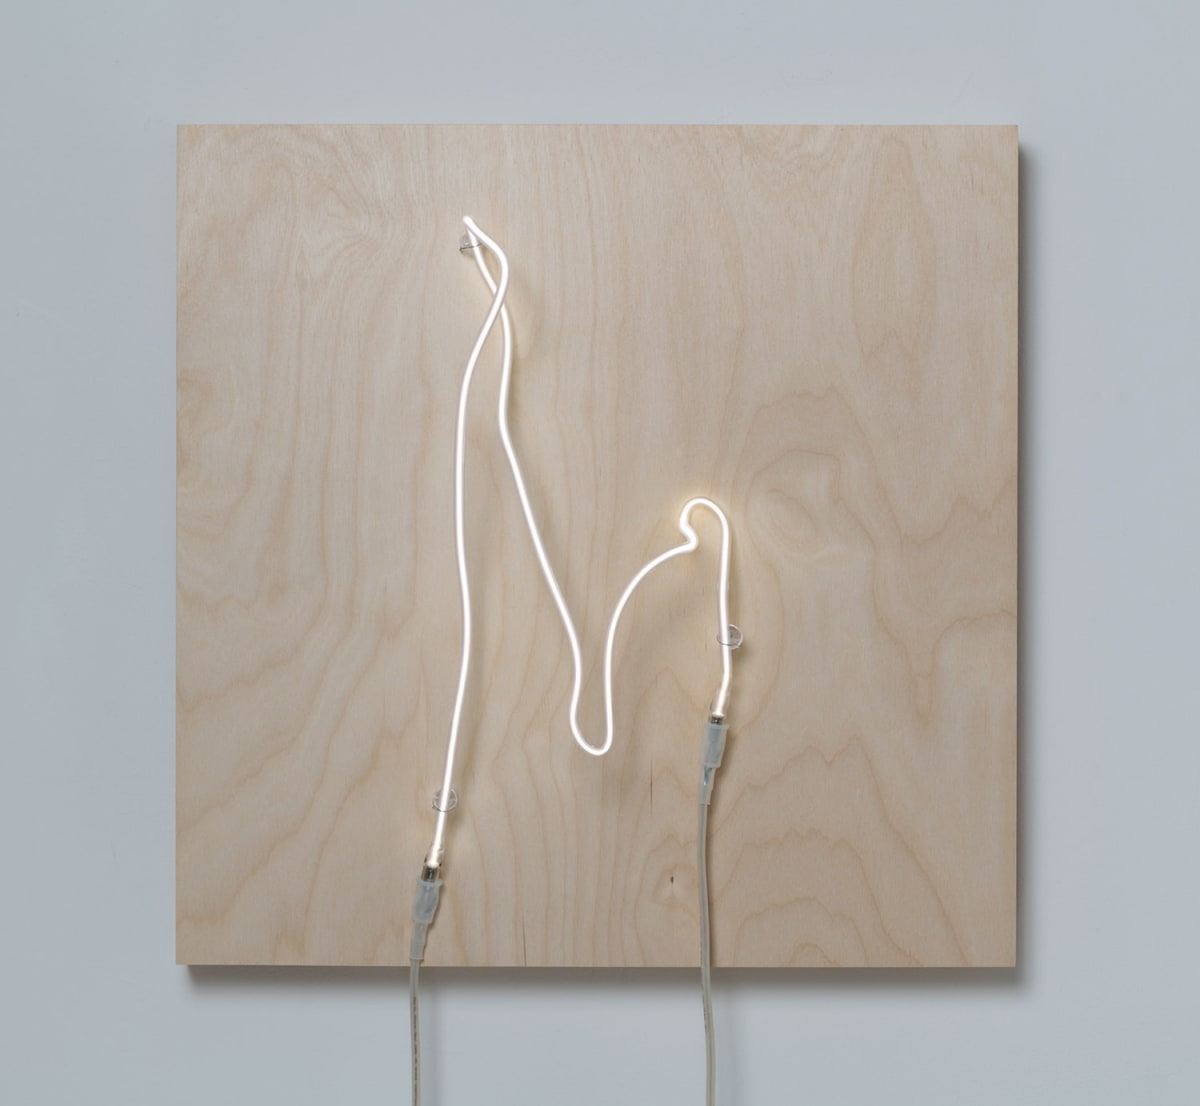 Annesta Le Exposed Form No.5, 2019 Neon (krypton, glass, wire) on wood panel 24 x 24 x 8 1/2 in 61 x 61 x 21.6 cm